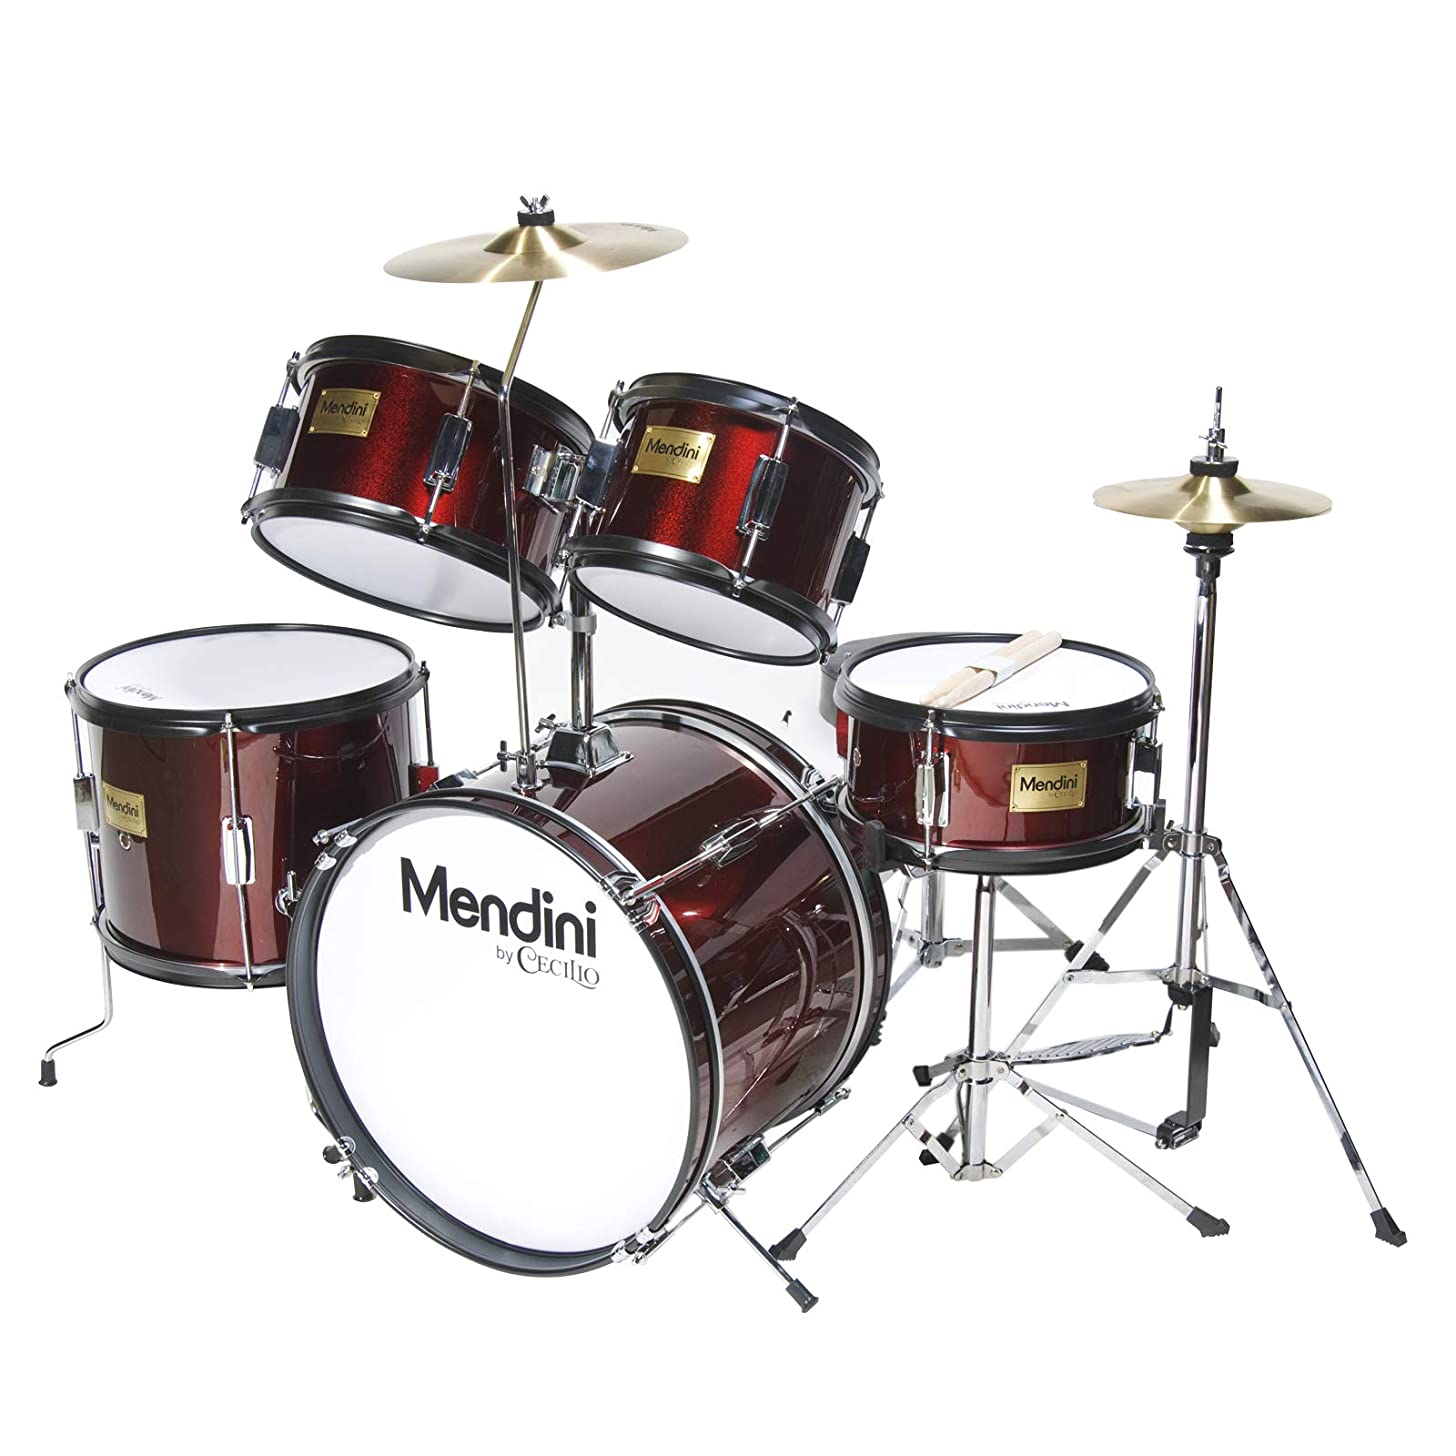 Mendini by Cecilio 16 inch 5-Piece Complete Kids / Junior Drum Set with Adjustable Throne, Cymbal, Pedal & Drumsticks, Metallic Wine Red, MJDS-5-WR